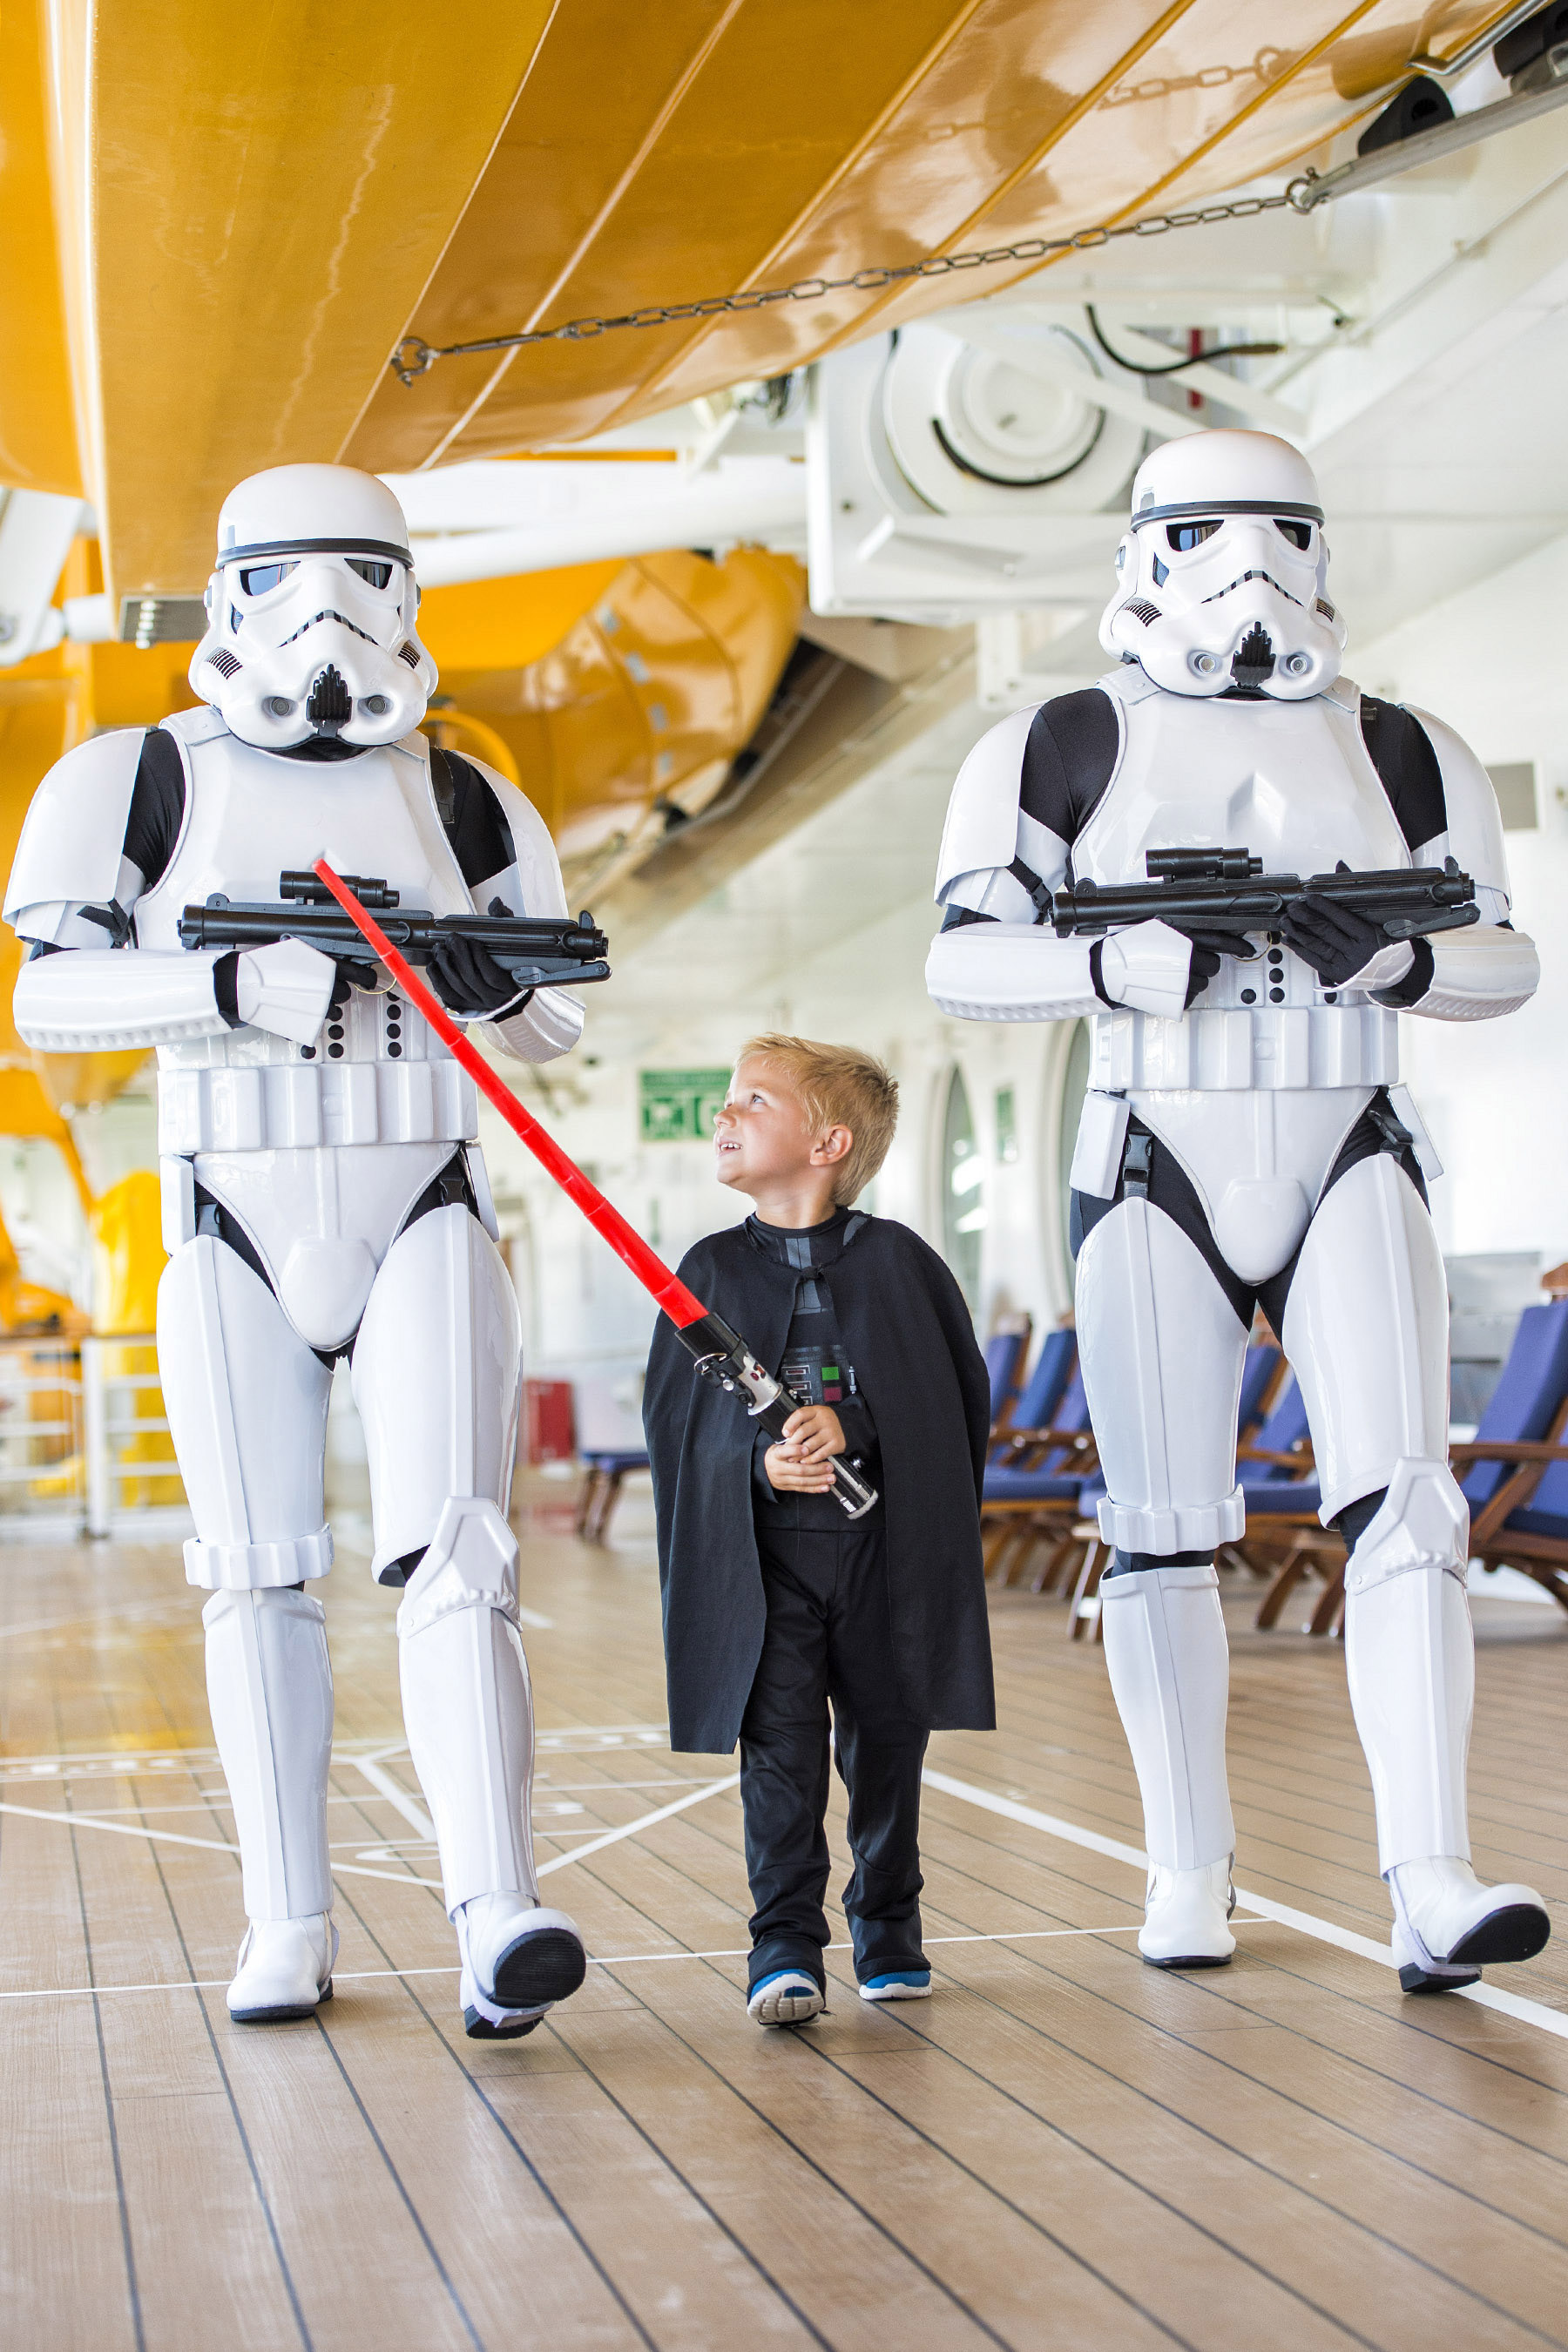 Star Wars Day at Sea Returns in 2017--Returning in early 2017, Disney Cruise Line guests can explore a galaxy far, far away during Star Wars Day at Sea, a day-long celebration of intergalactic proportions with iconic characters and out-of-this-world entertainment. New in 2017, the Disney Fantasy special sailings expand to both eastern and western Caribbean itineraries with a total of 15 cruises. (Matt Stroshane, Photographer)